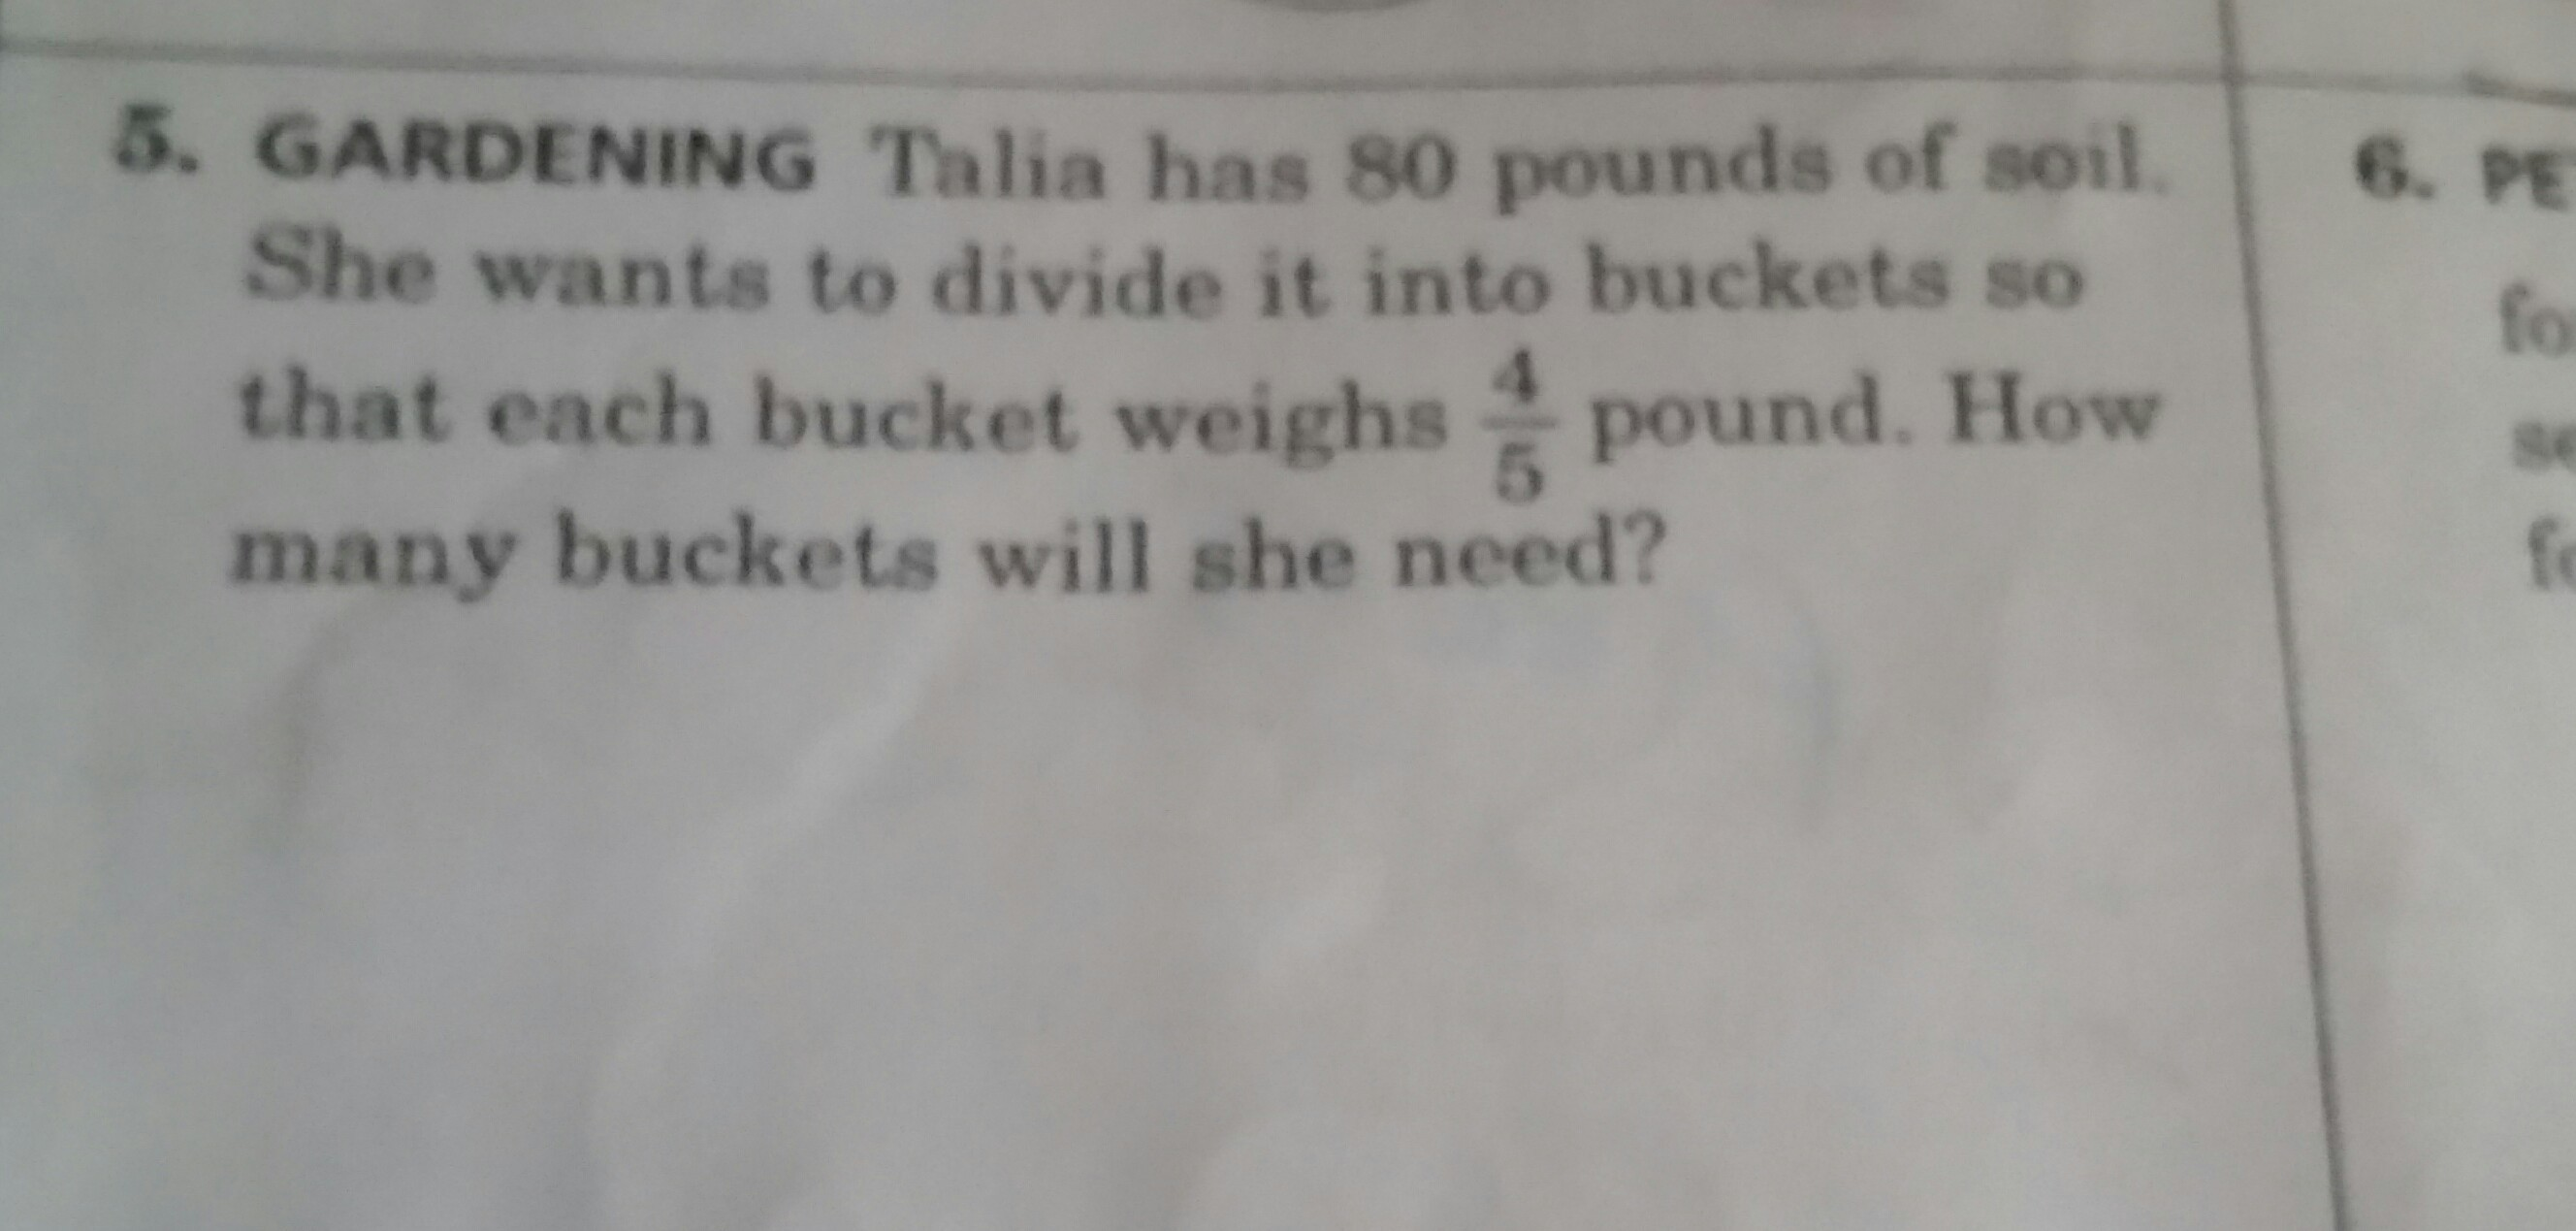 talia has 80 pounds of soil she wants to divide it into bucket so